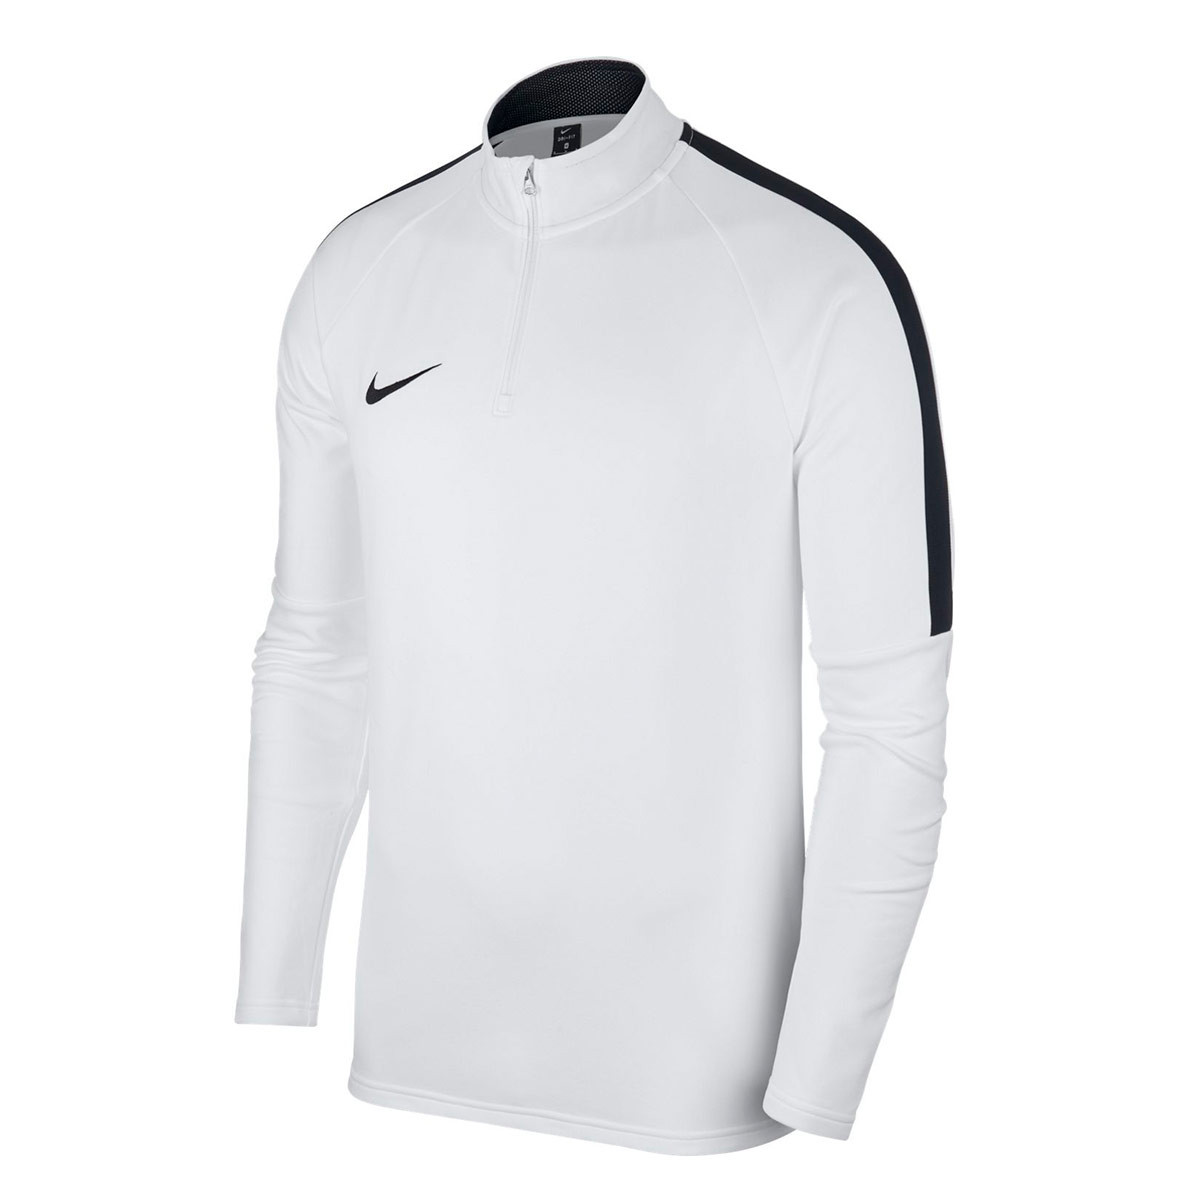 Lo siento semilla Transparentemente  Sweatshirt Nike Academy 18 Drill White-Black - Football store Fútbol Emotion